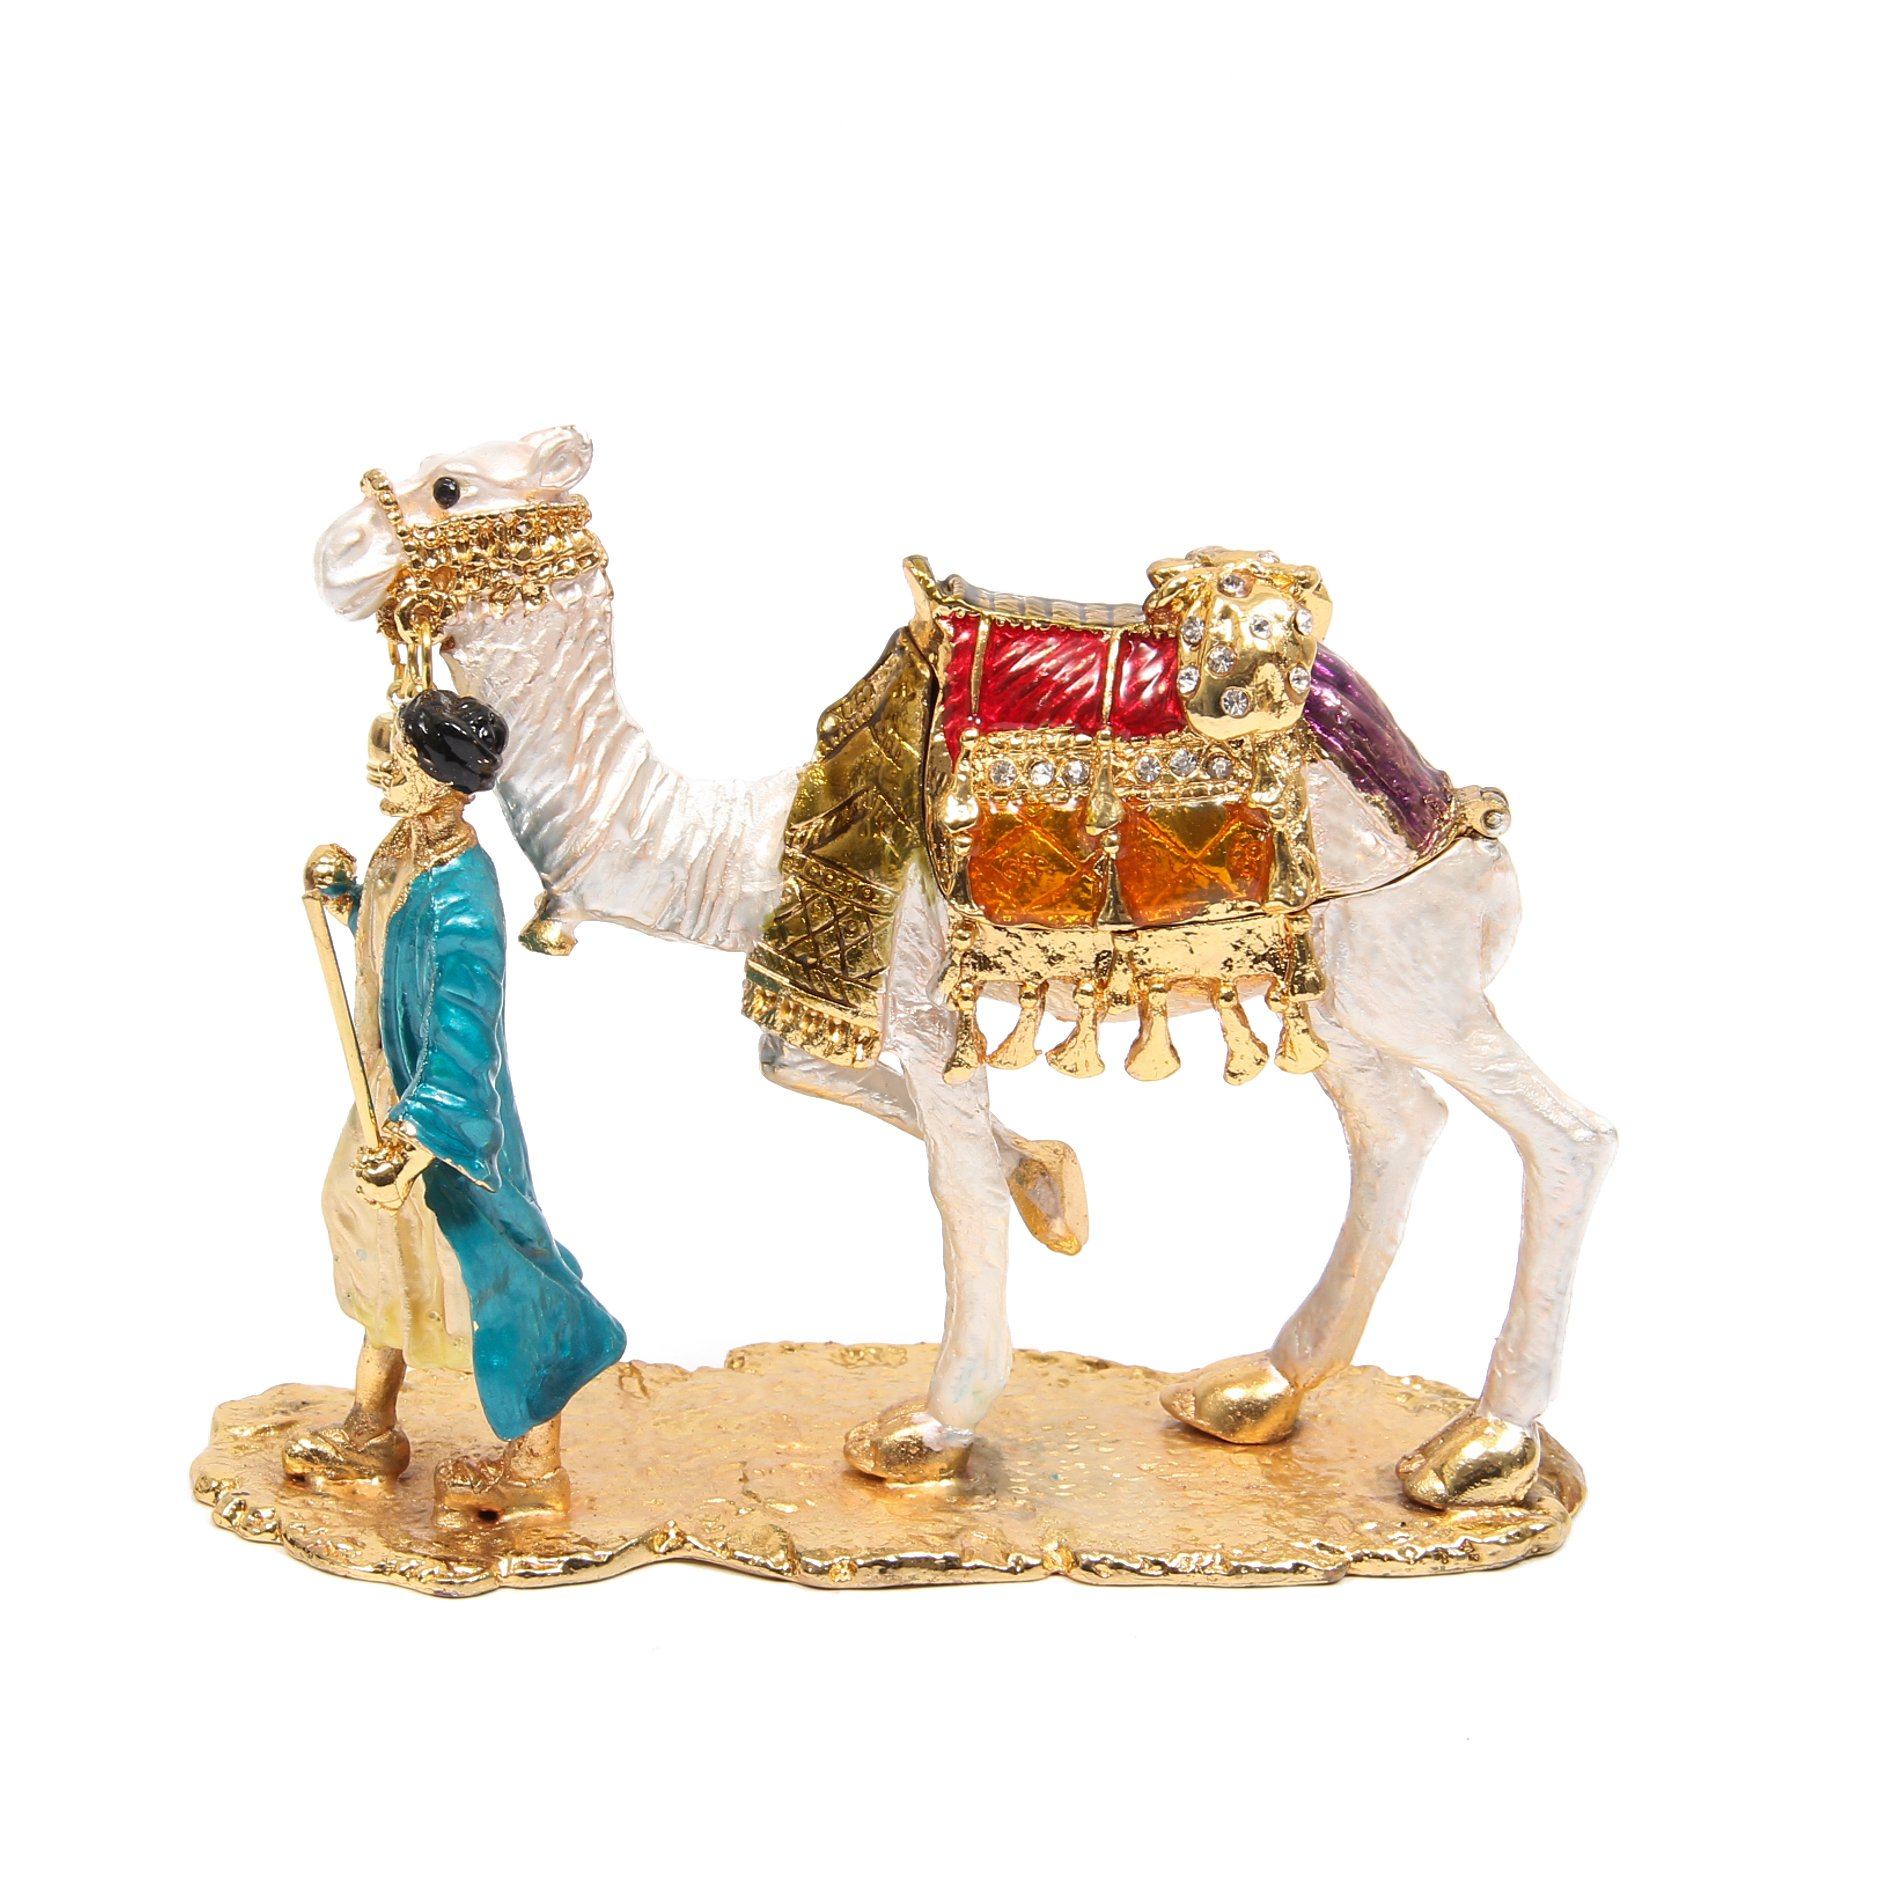 QIFU-Hand Painted Enameled Camel Decorative Hinged Jewelry Trinket Box Unique Gift for Home Decor